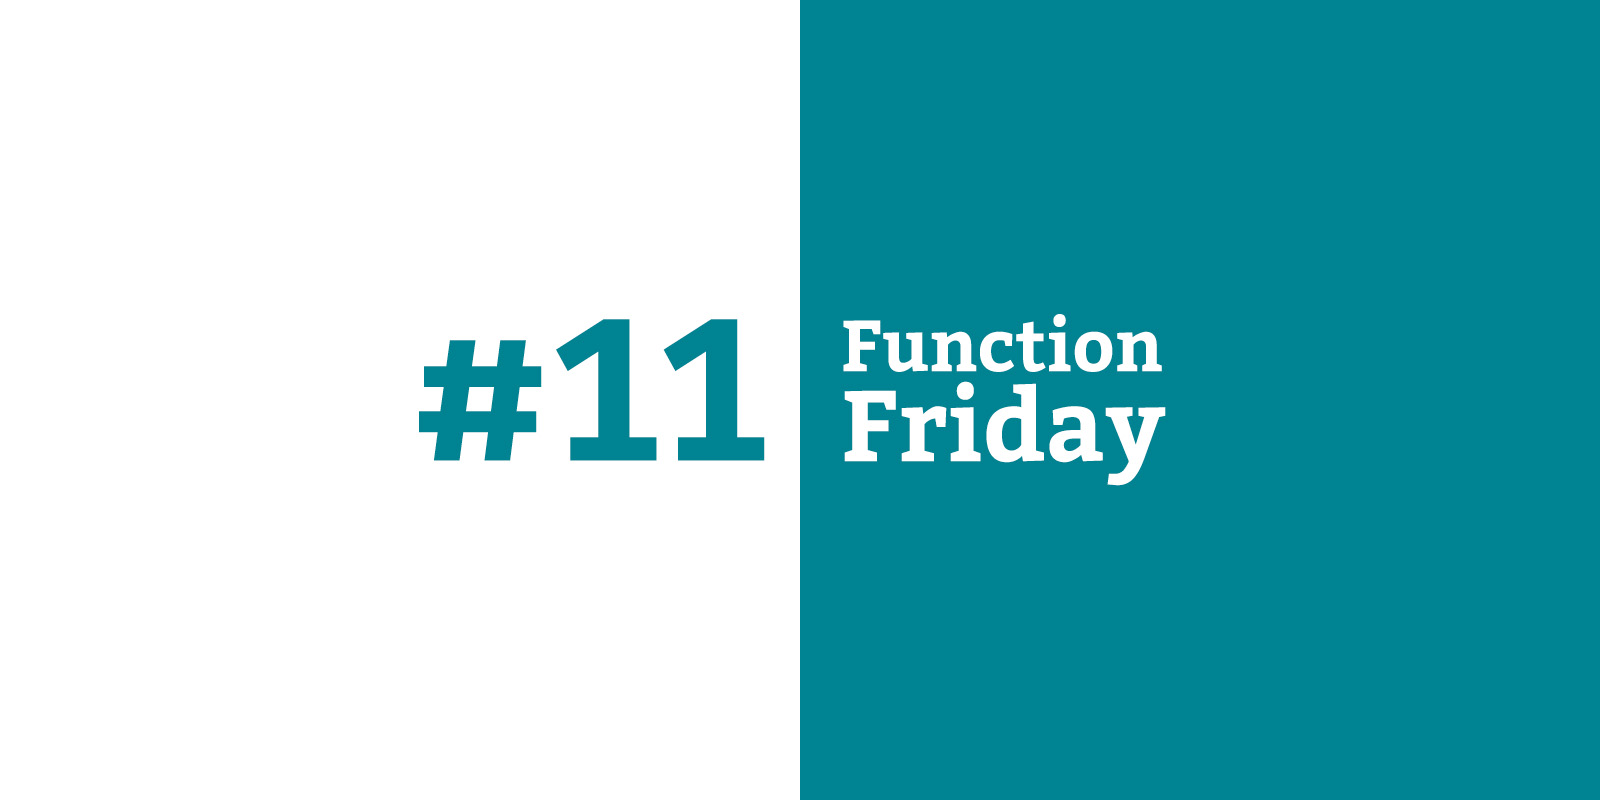 Function Friday #11